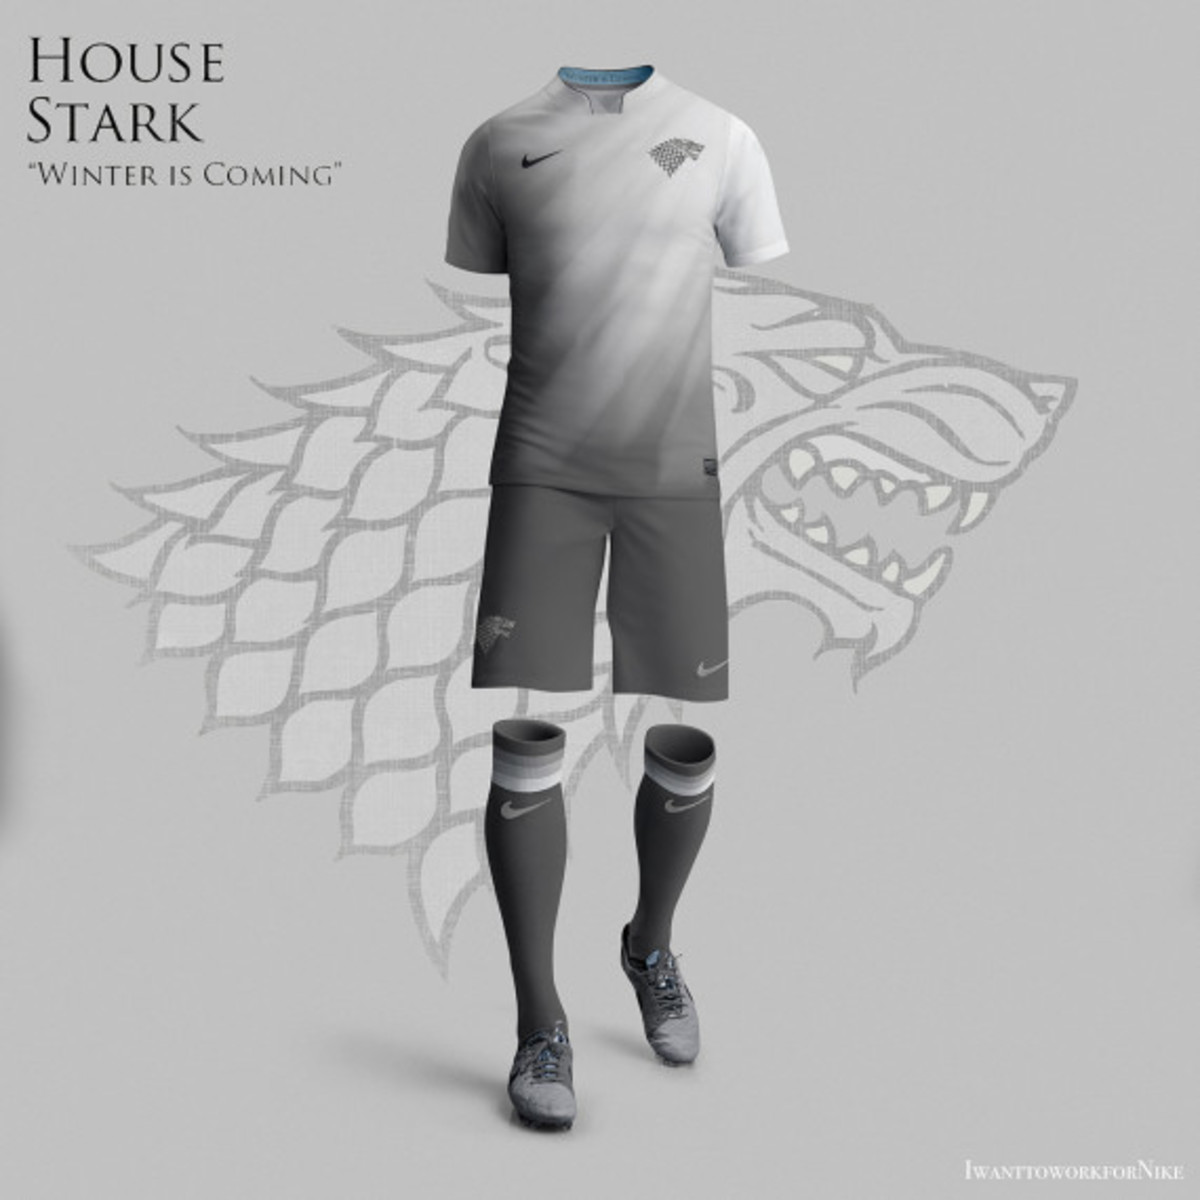 Game of Thrones-inspired Nike Soccer Kit Concepts by Nerea Palacios - 0